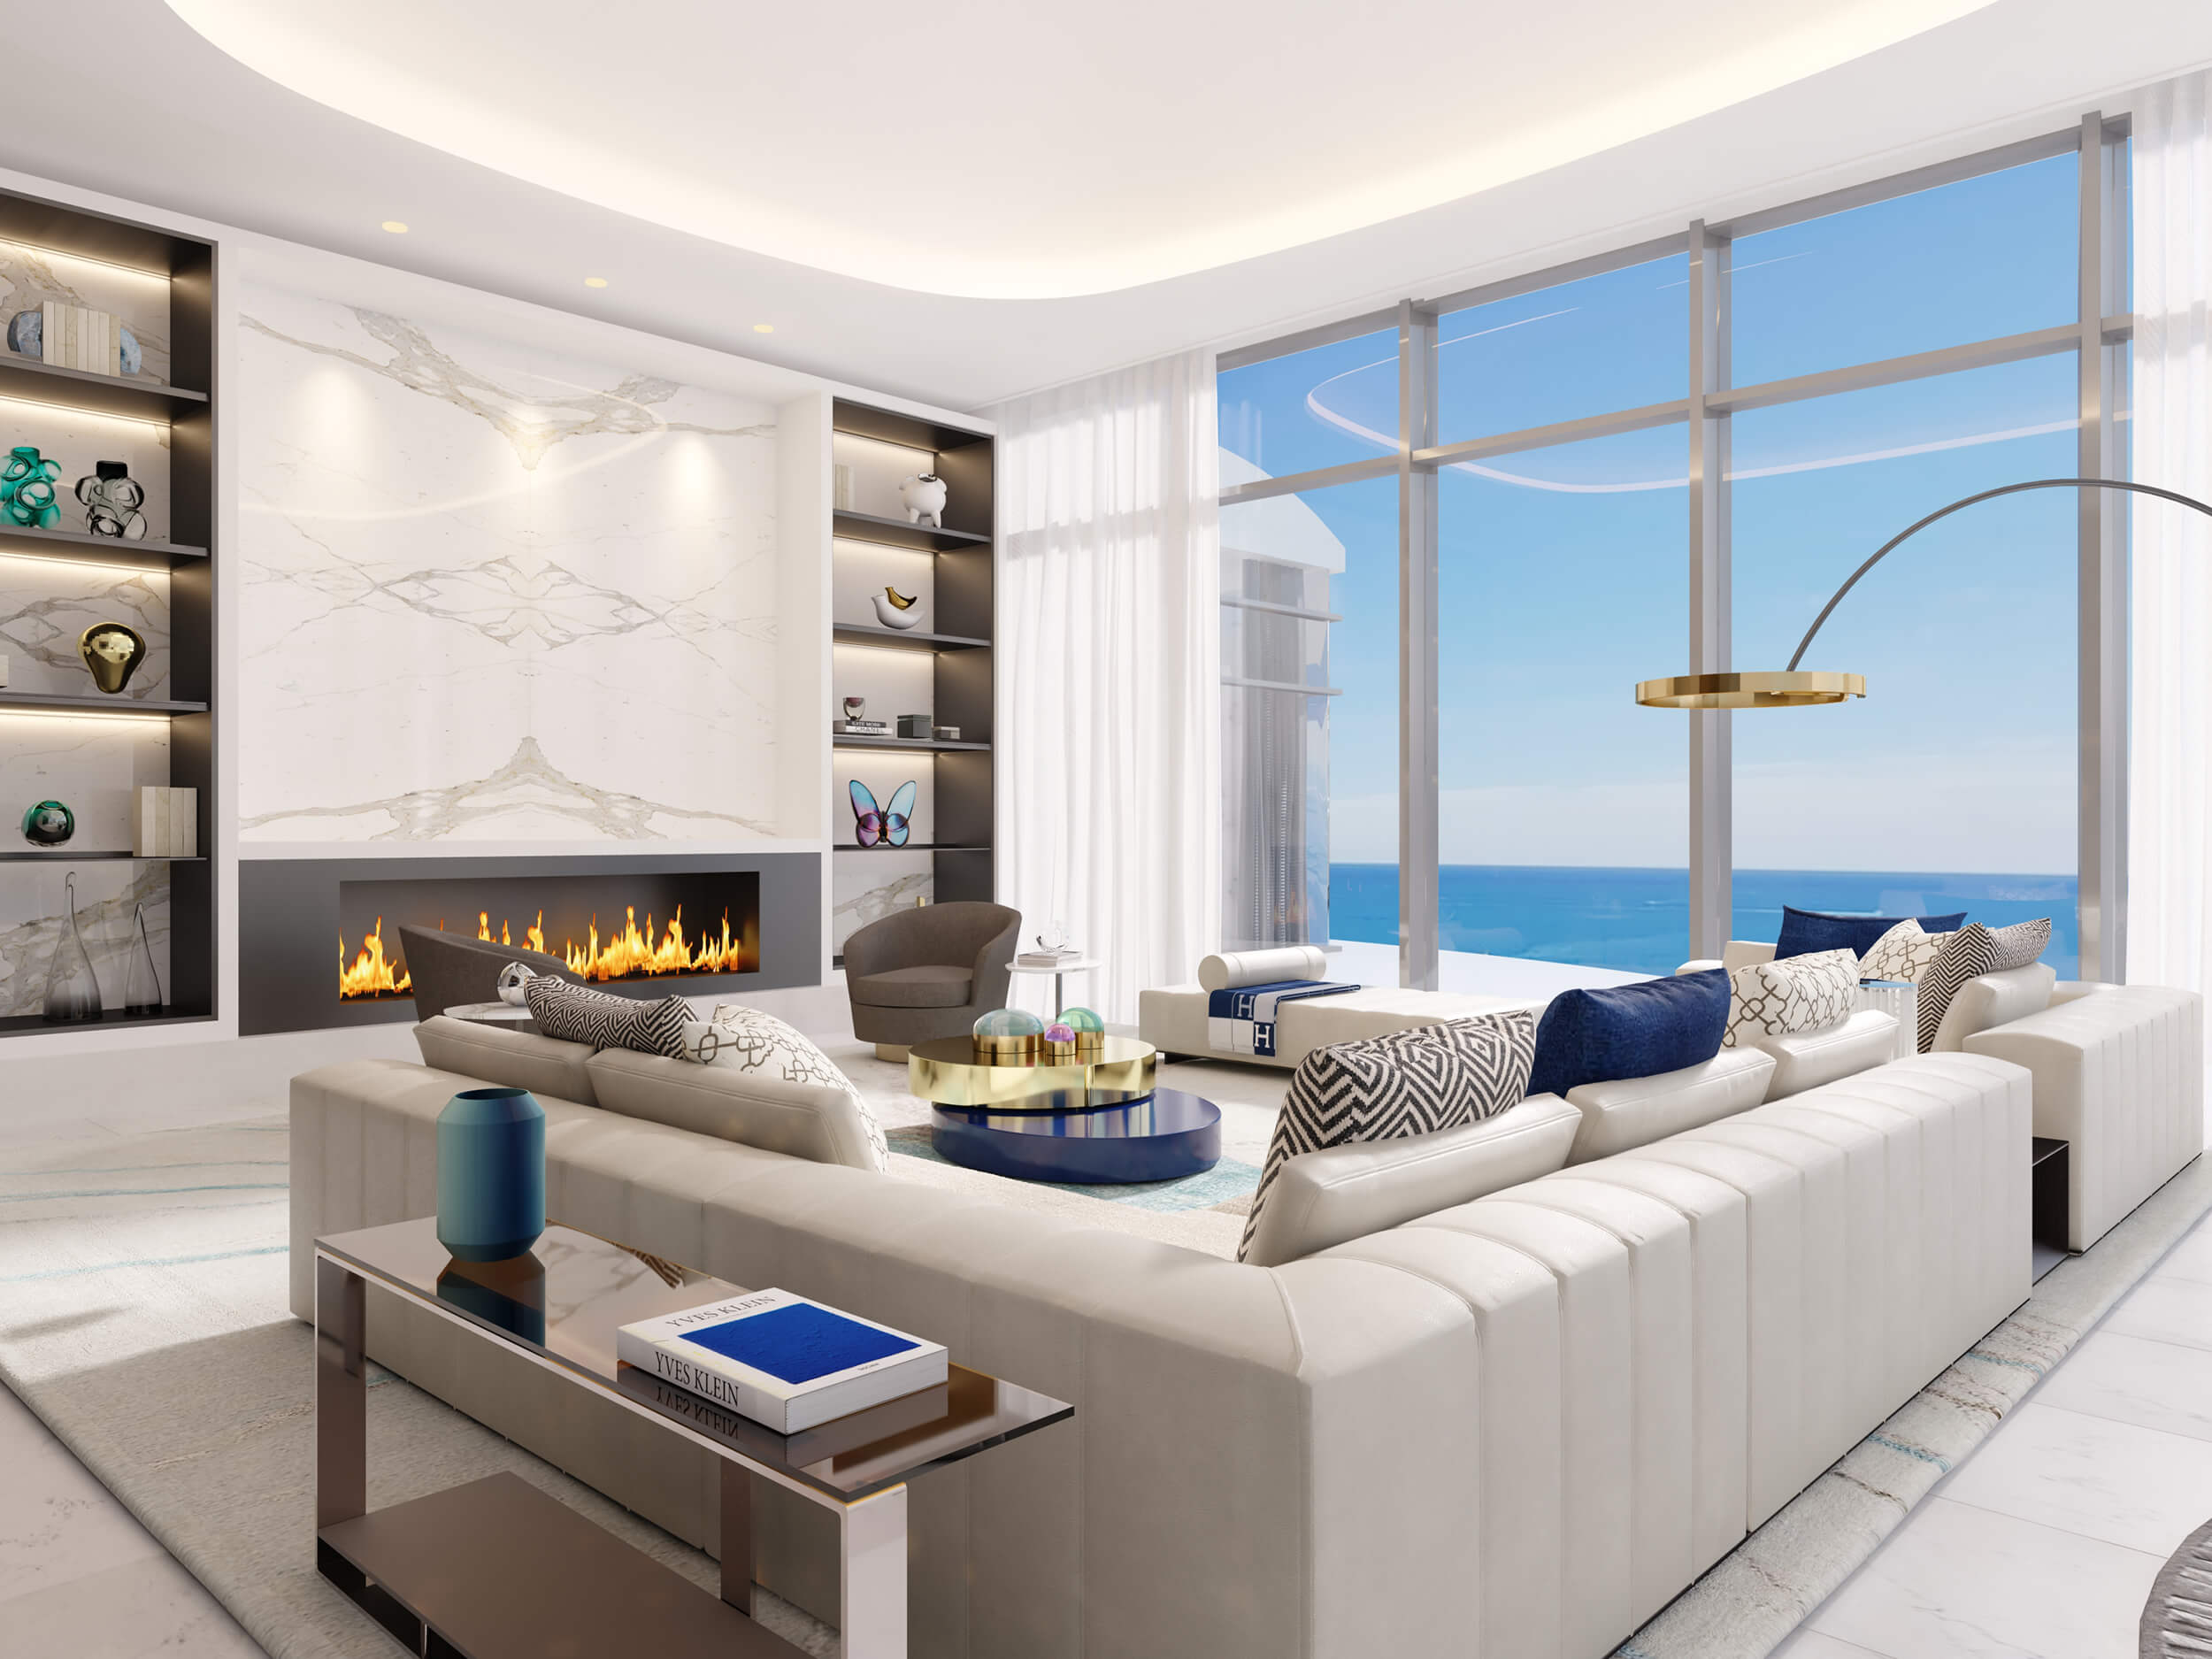 BRITTO CHARETTE HAS DESIGNED A LUXURIOUS PH INTERIOR IN SUNNY ISLES: RITZ CARLTON